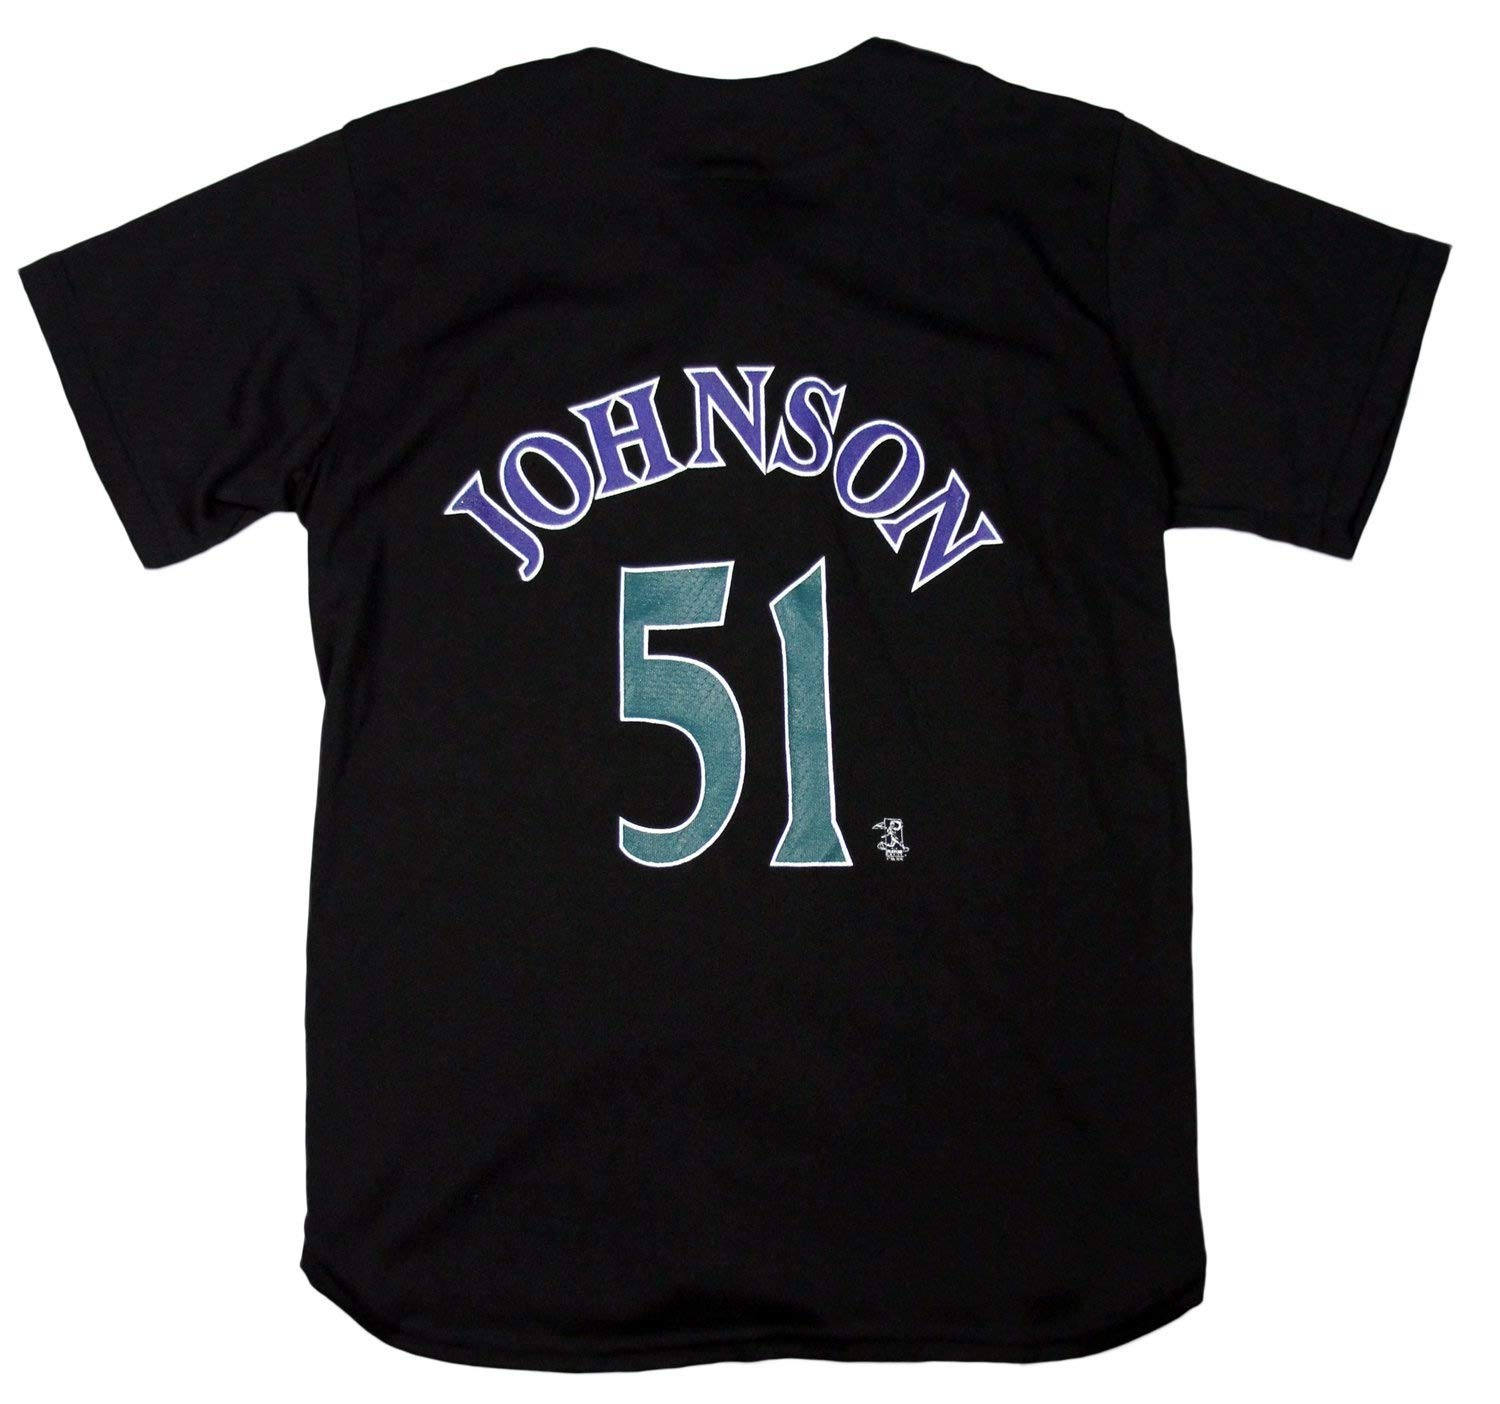 12869fc1 Amazon.com : Mighty Mac Arizona Diamondbacks Randy Johnson #51 MLB Big Boys  Vintage Replica Jersey, Black : Clothing